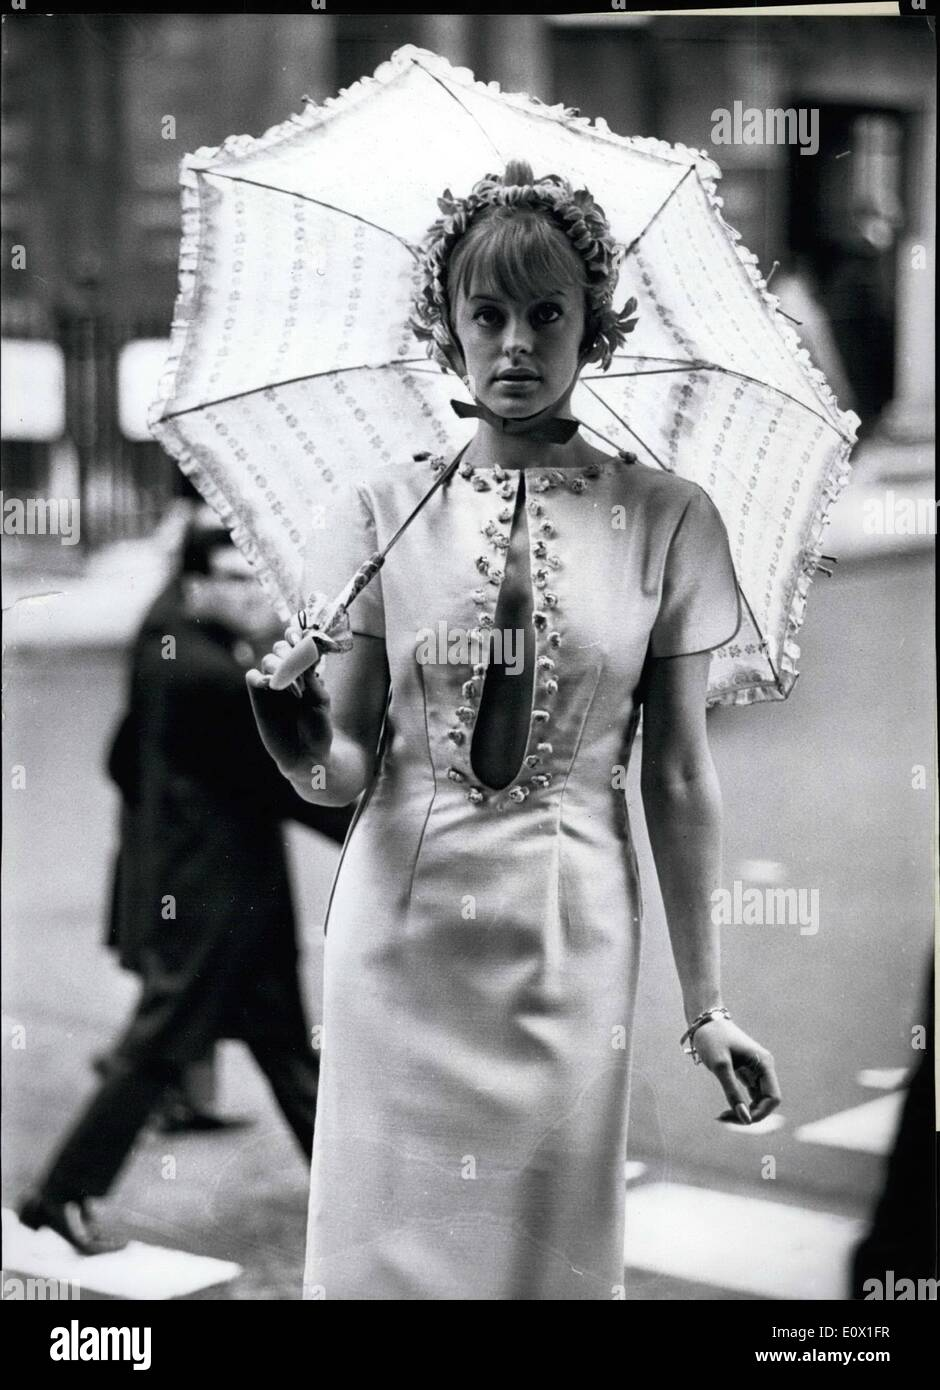 Dec. 12, 1964 - She looks nicer. because she has reversed her dress.. Eyes popped when Gay Beresford stepped out - Stock Image